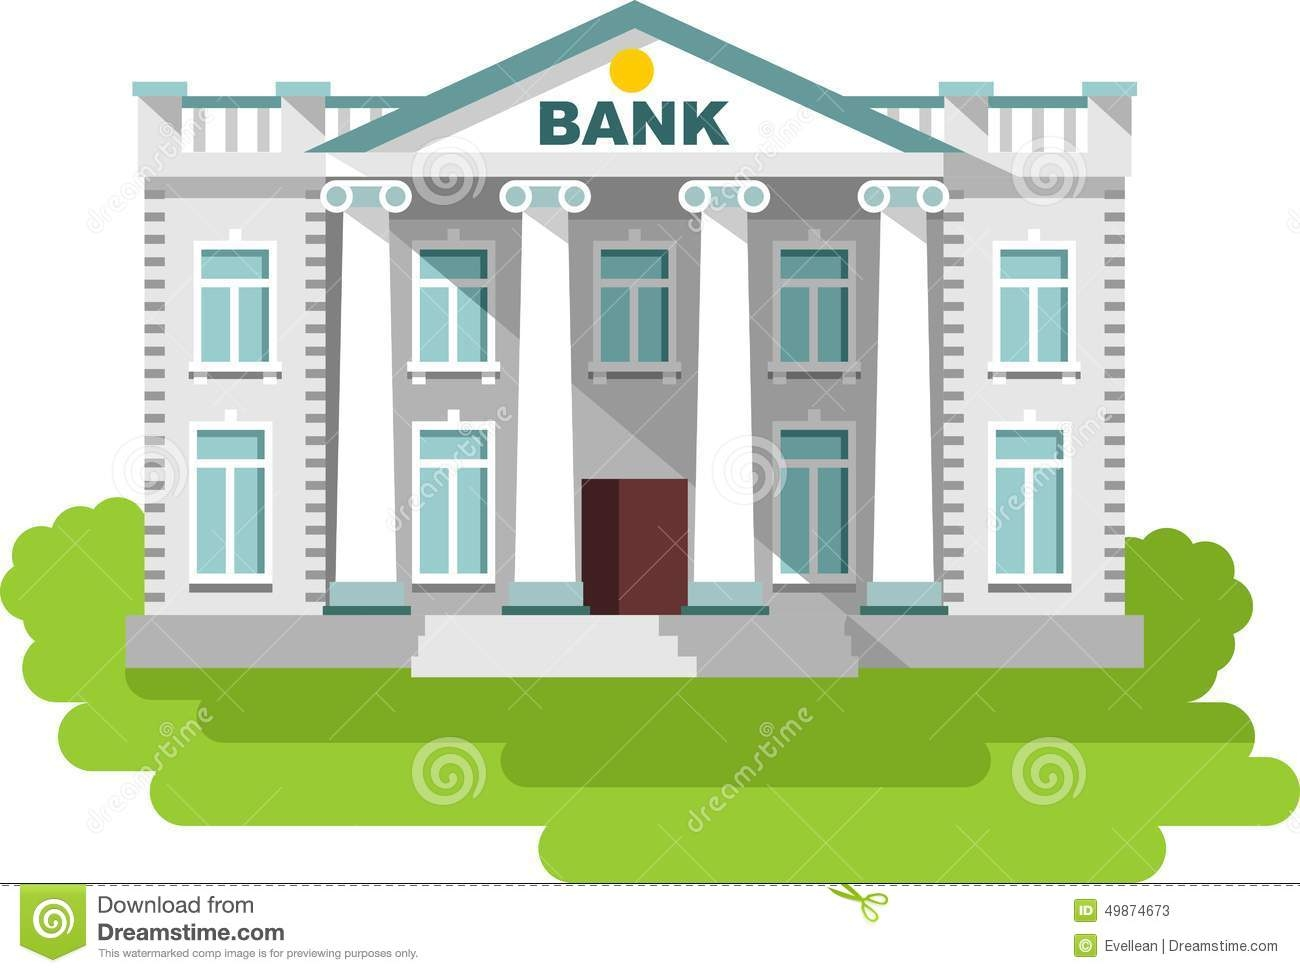 Bank building clipart clipart royalty free download Bank building clipart » Clipart Station clipart royalty free download